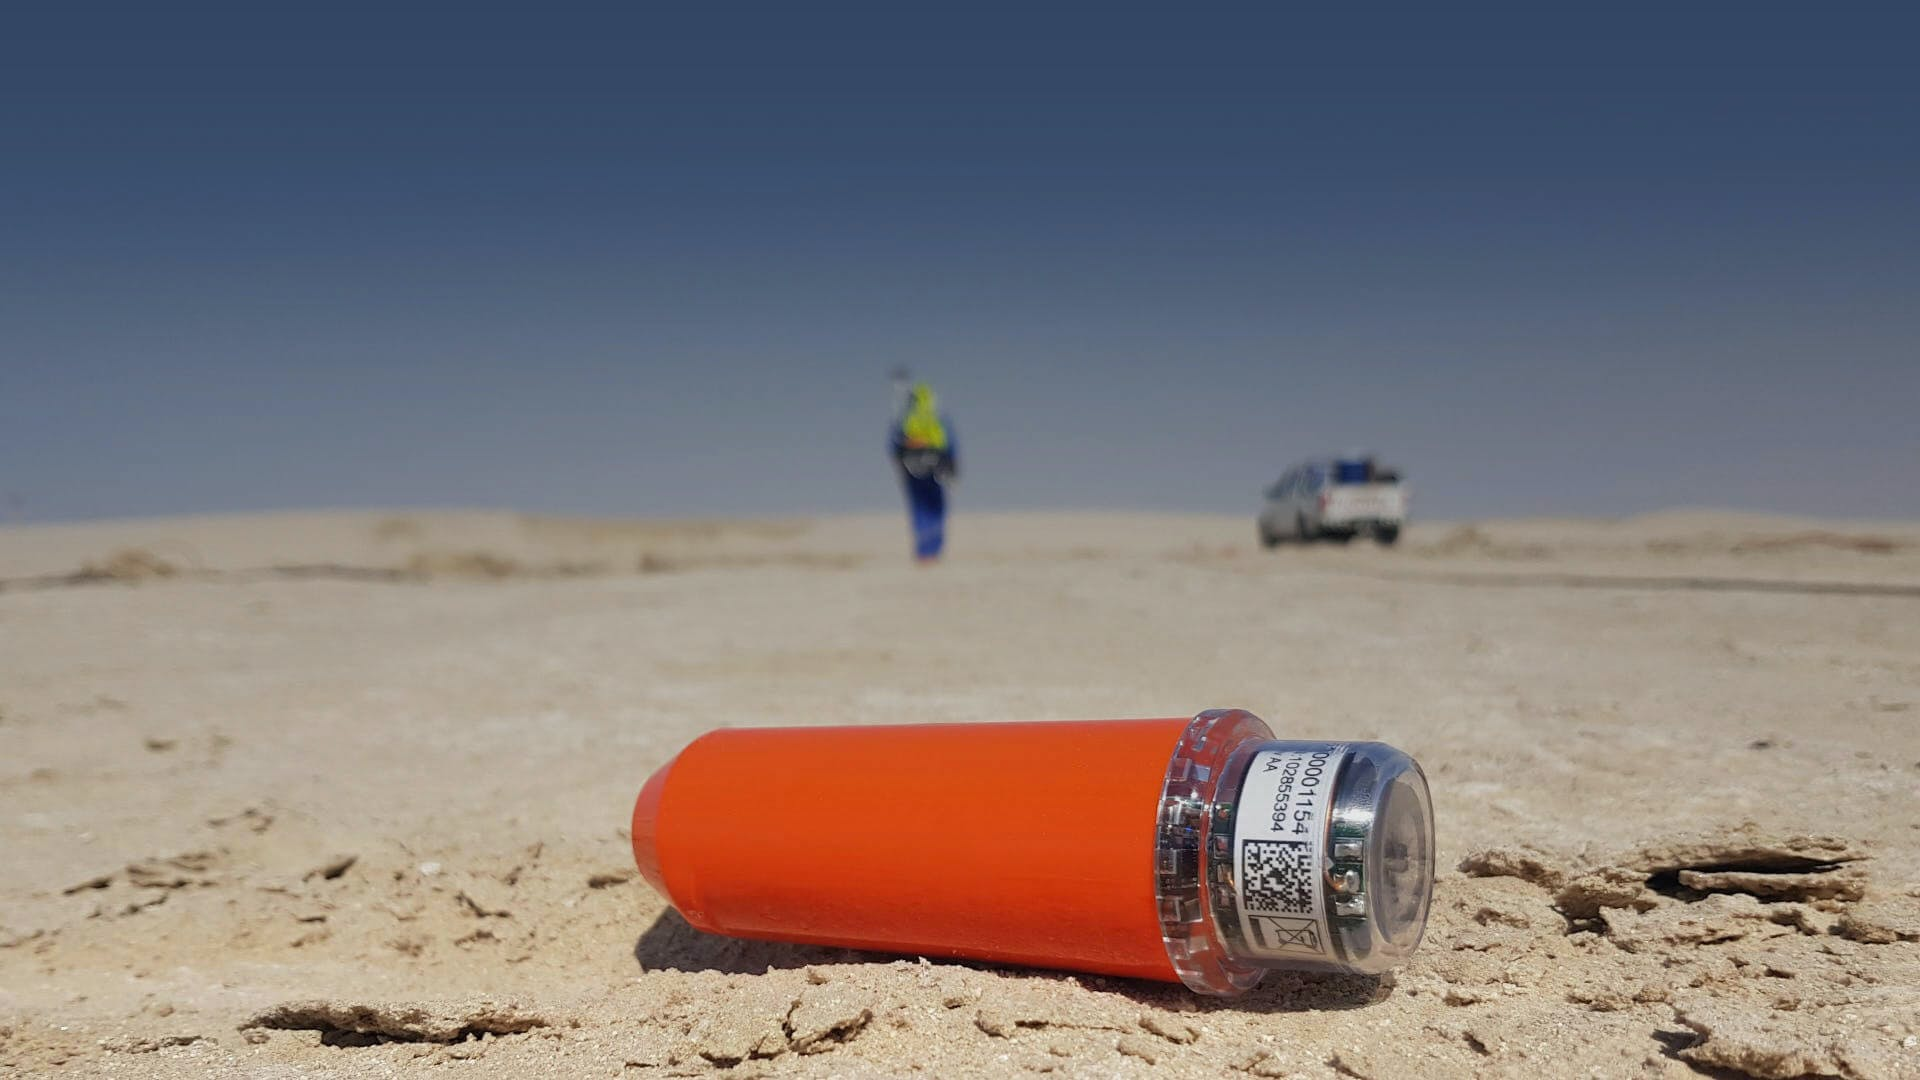 STRYDE autonomous node for seismic exploration and acquisition on the ground in the desert